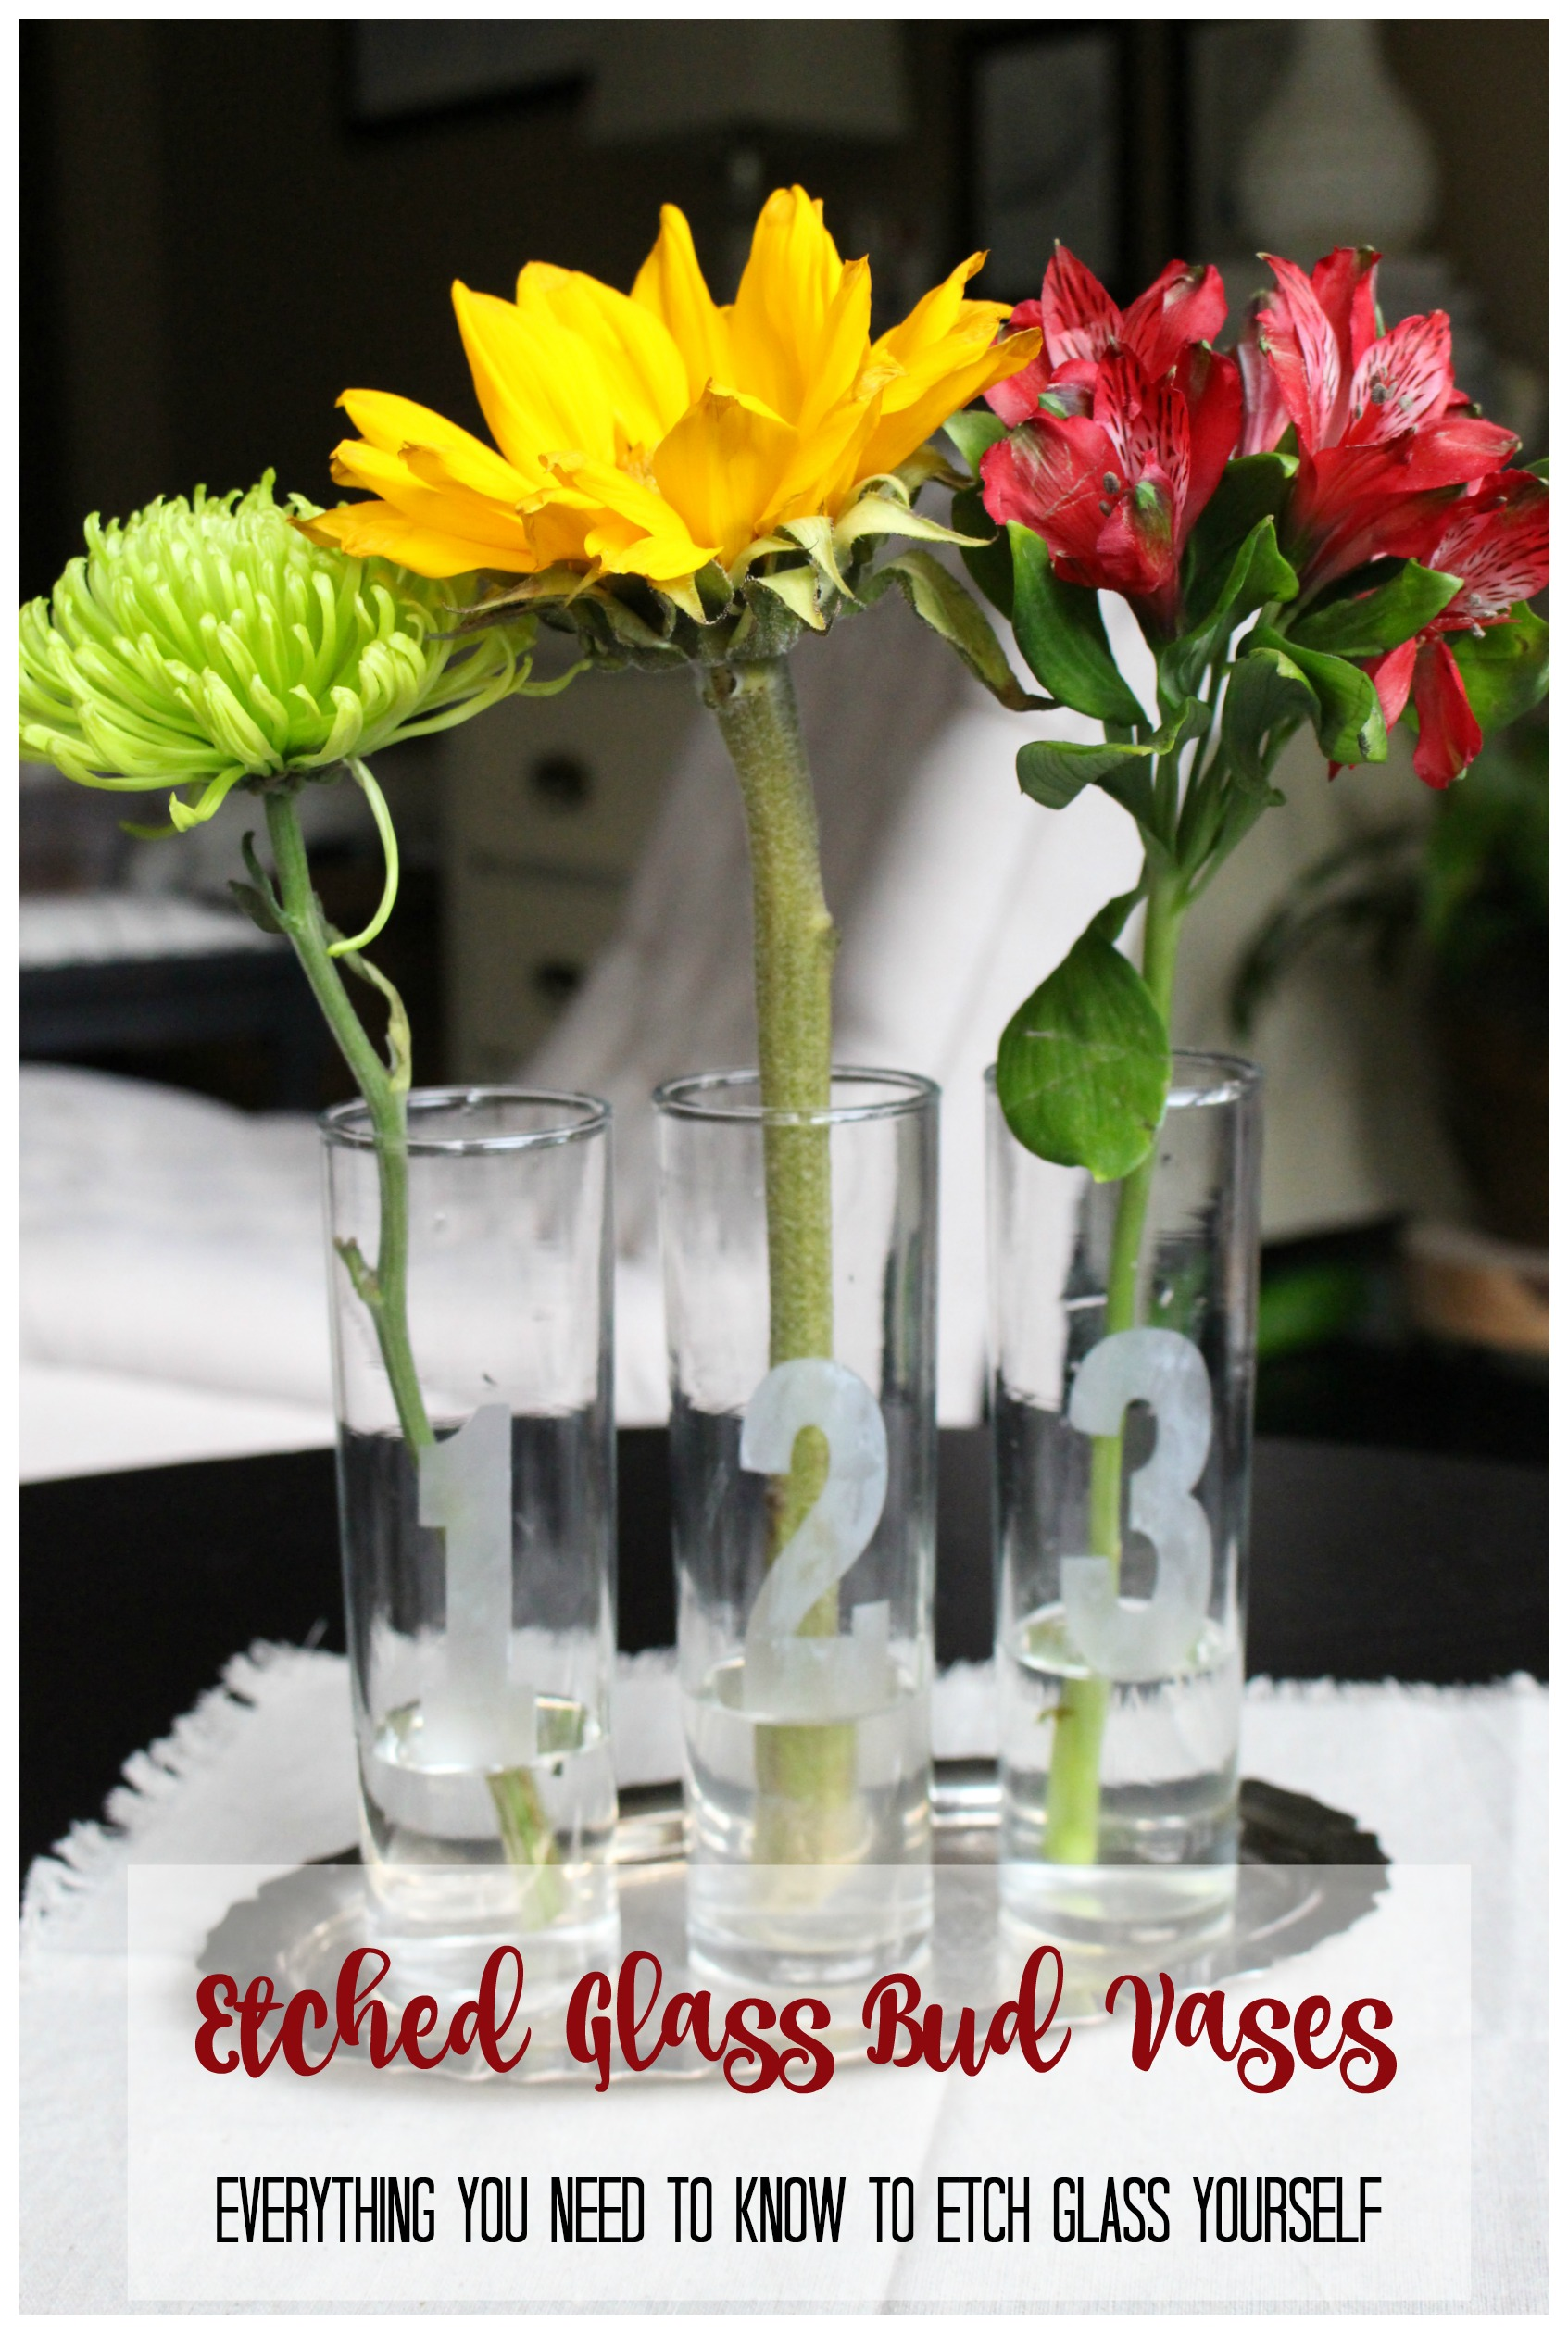 Etched Glass Bud Vases- how to etch glass- DIY- crafts- etching glass- easy etched glass projects- create with me challenge.